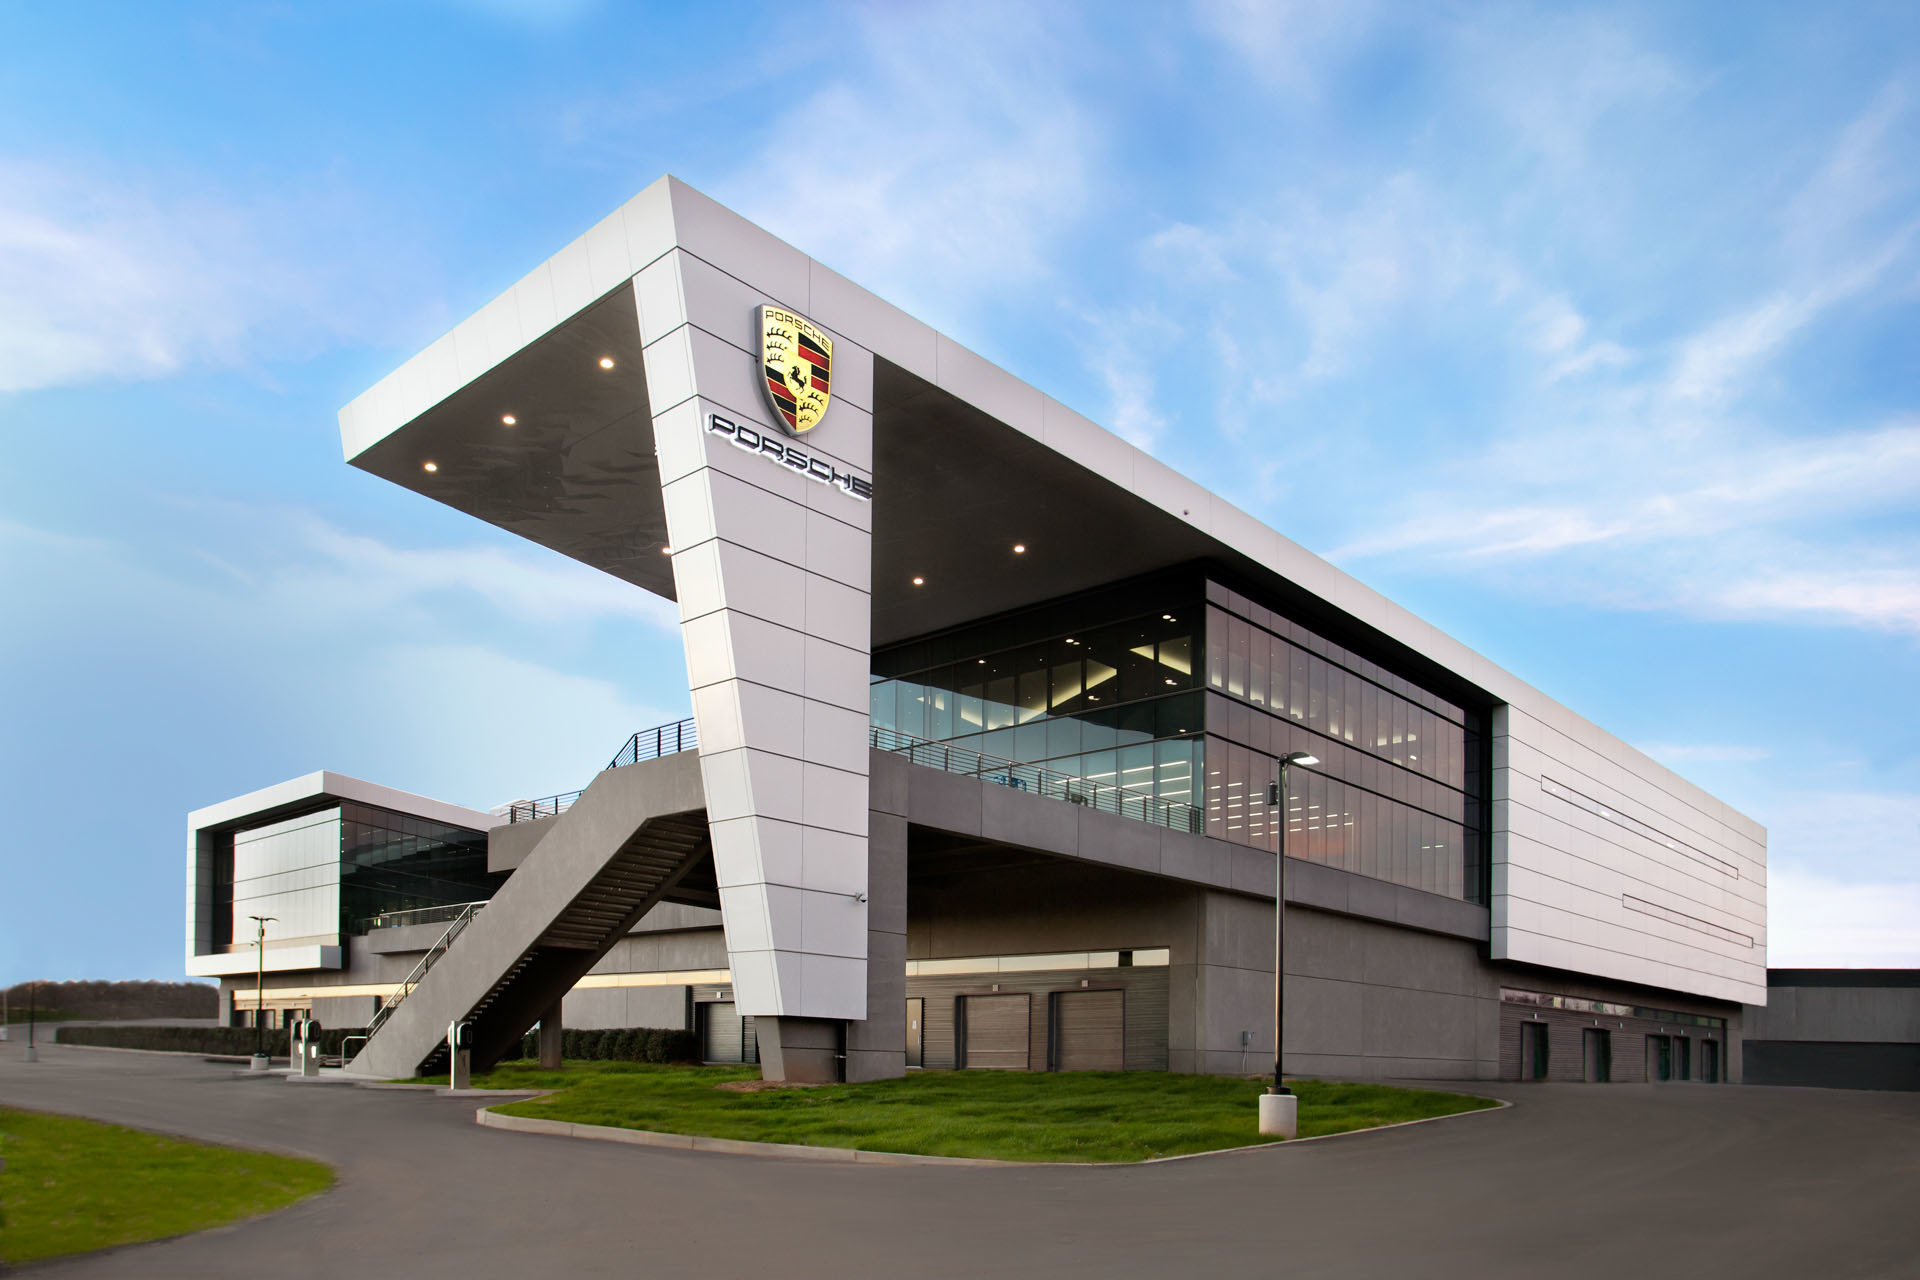 porsche-us-headquarters-and-experience-center-001-1